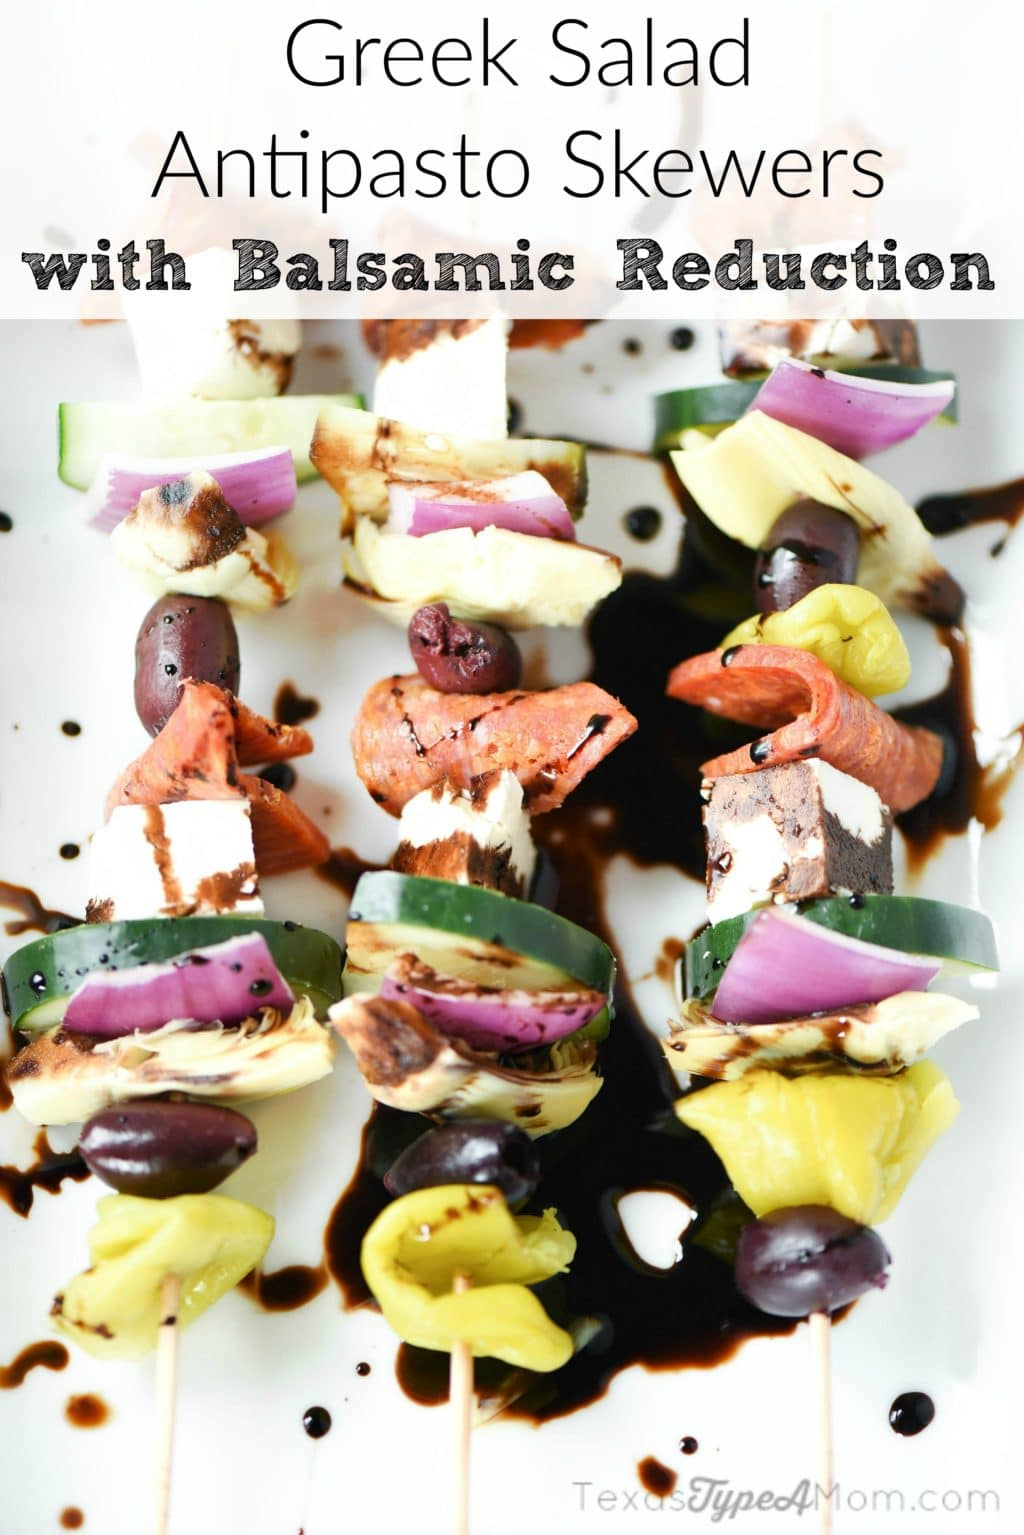 Easy Antipasto Recipe: Greek Salad Skewers with Balsamic Reduction